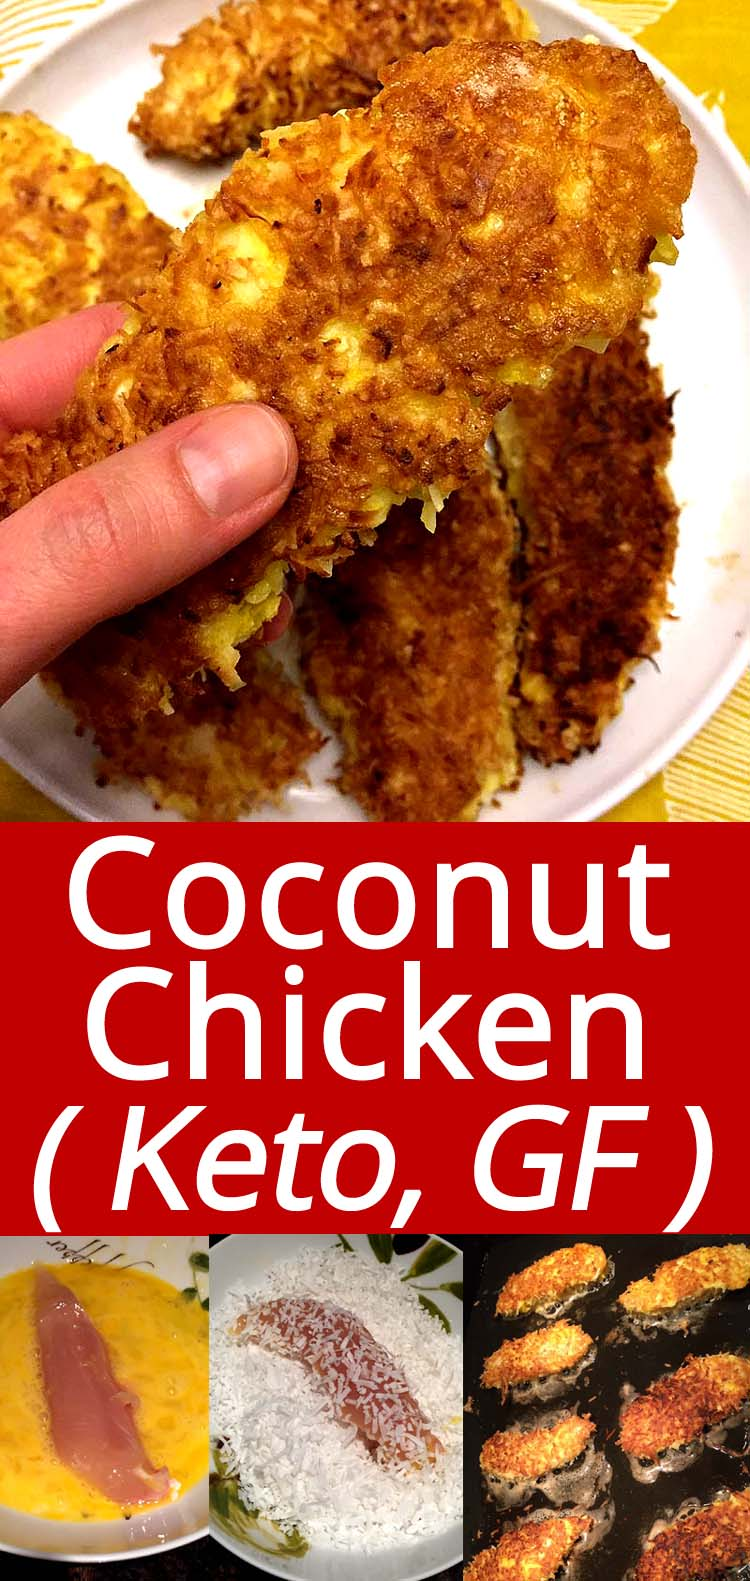 These coconut crusted chicken tenders are amazing! Keto, low-carb and gluten-free! So easy to make and taste mouthwatering, everyone loves them!